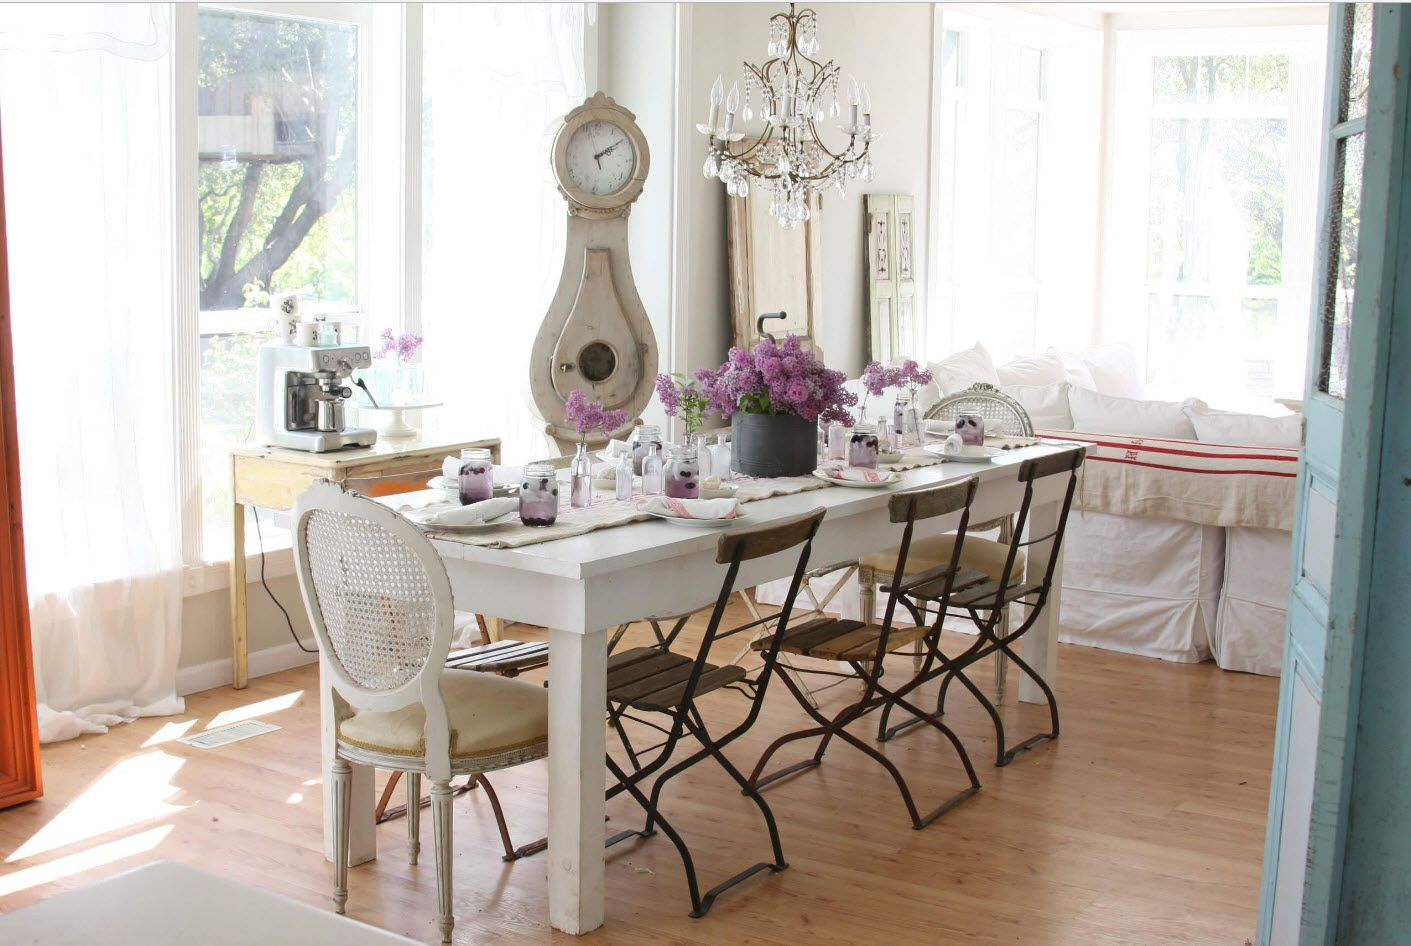 Classic dining room with large rectangular table and compact chairs